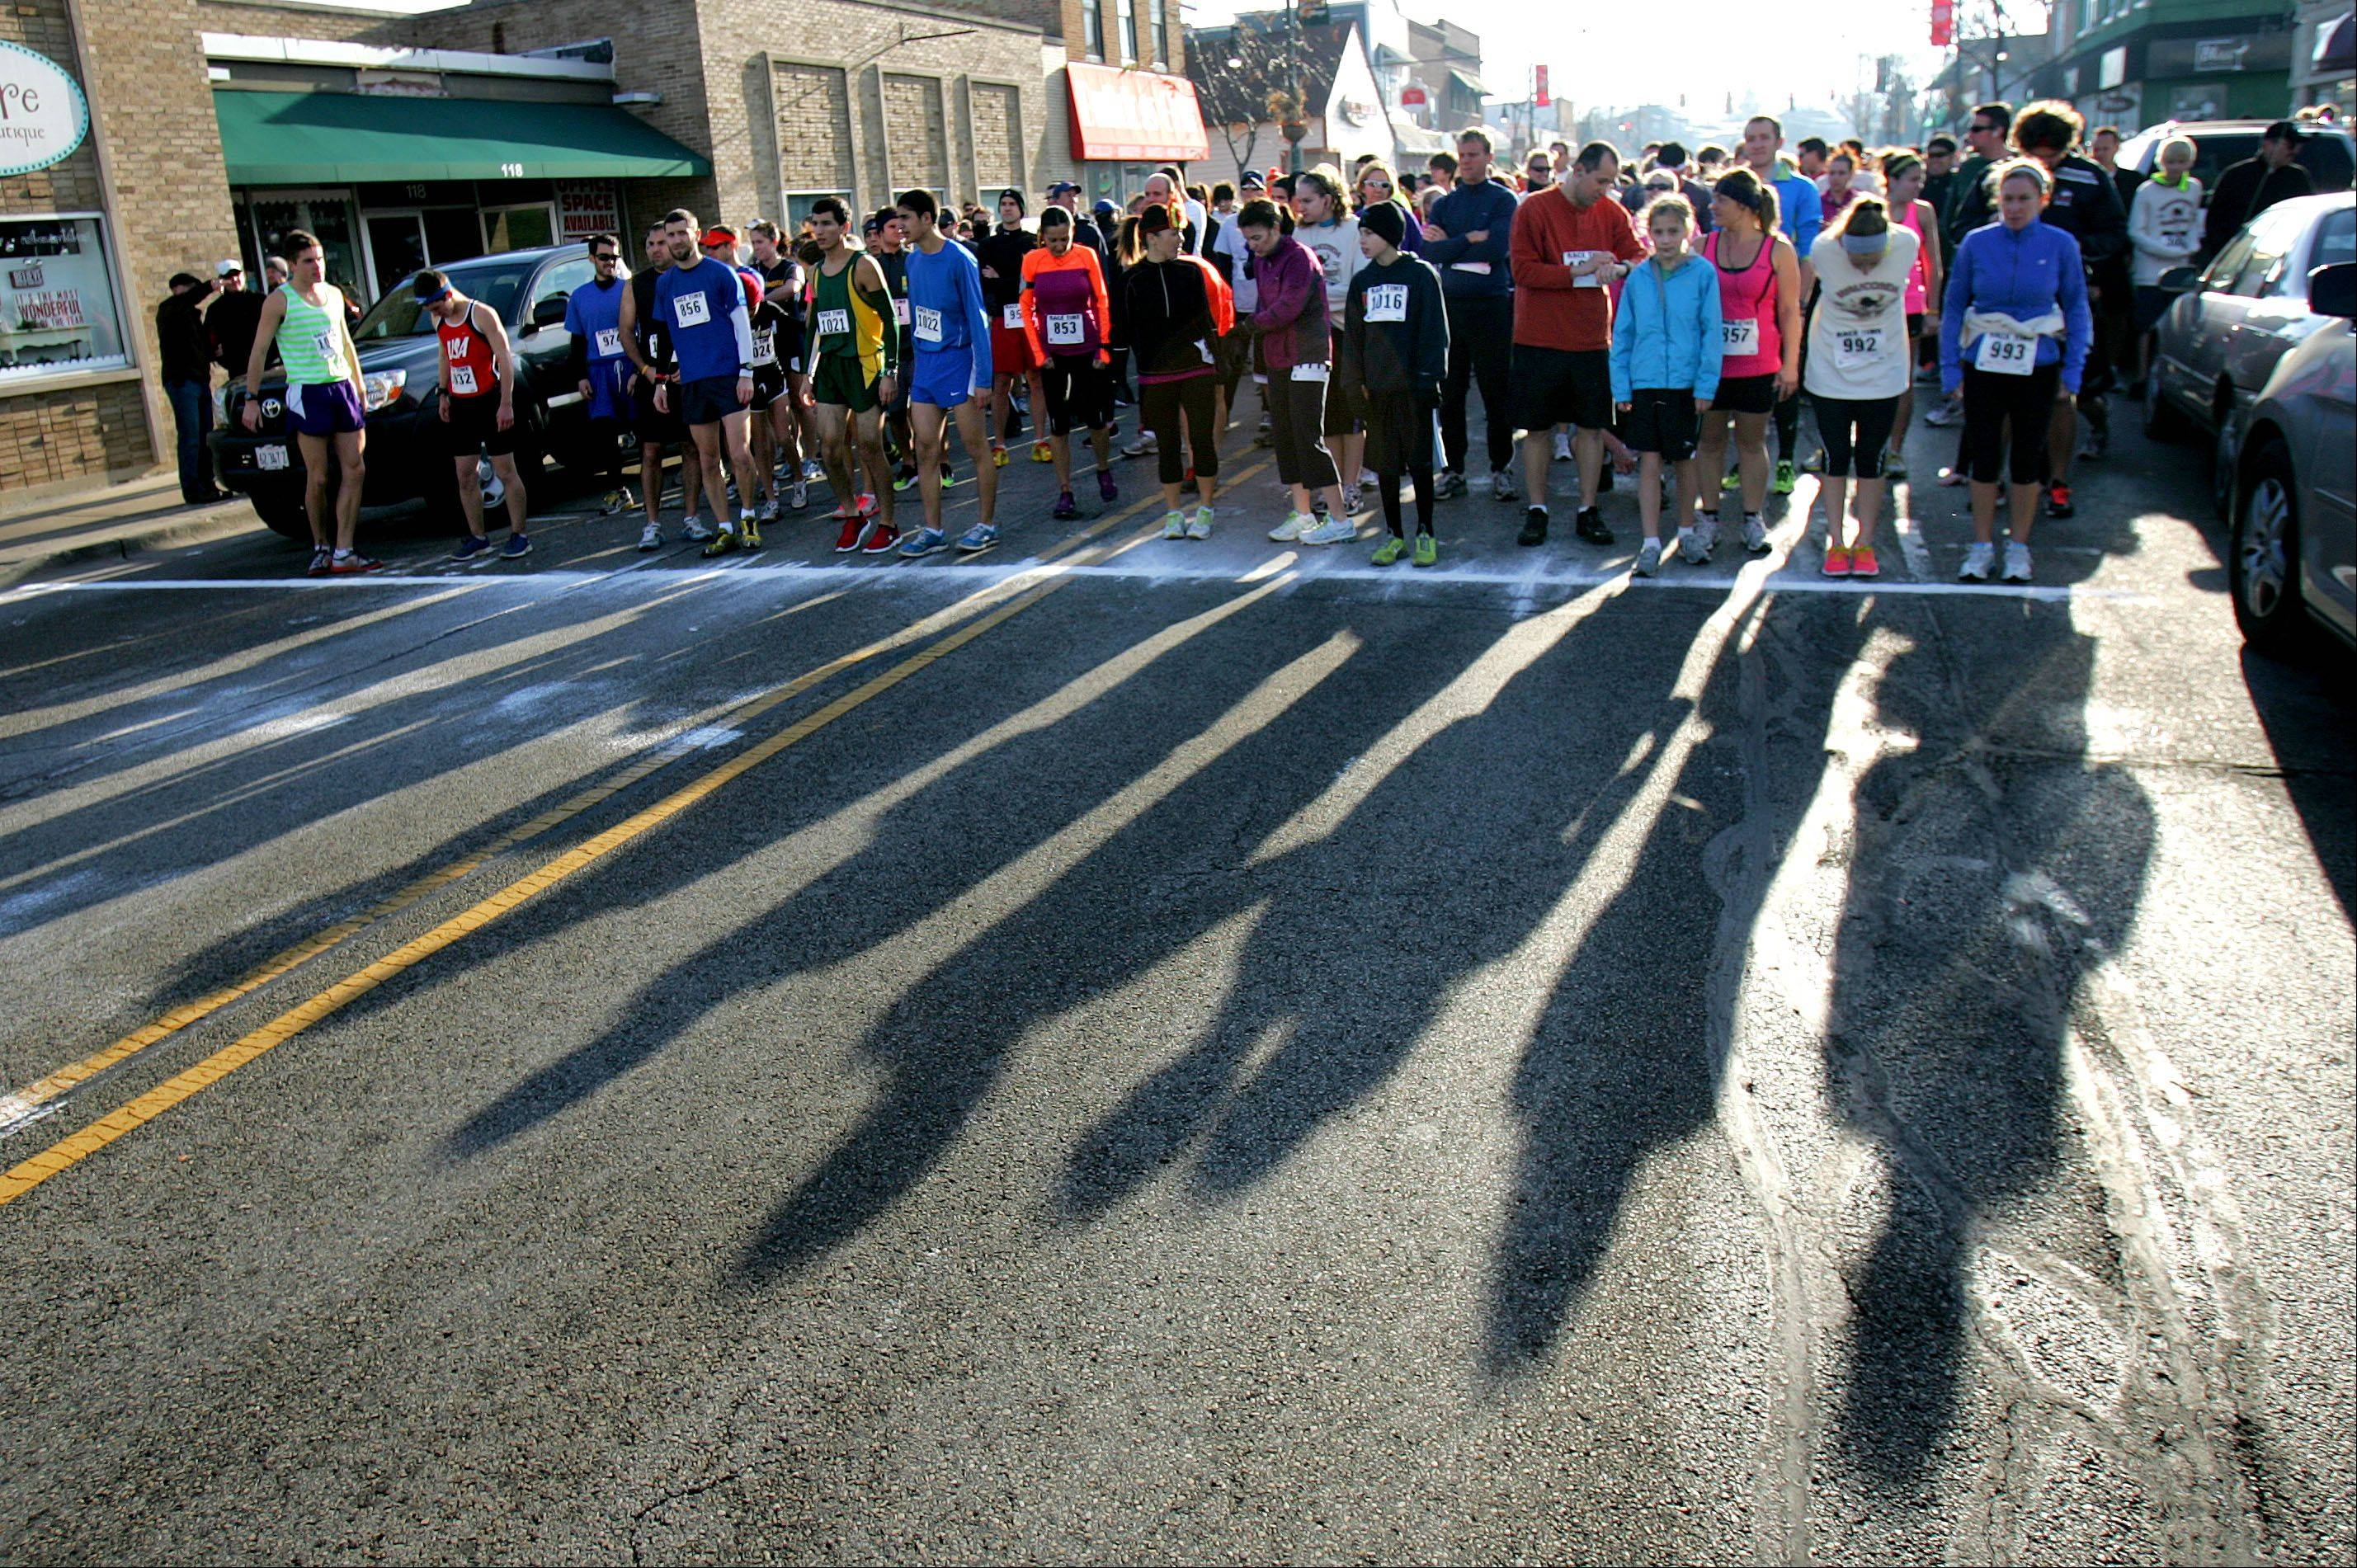 This was the view as the runners prepared to start the 2012 Wauconda Turkey Trot. This year's 4-mile race is set for Nov. 28.